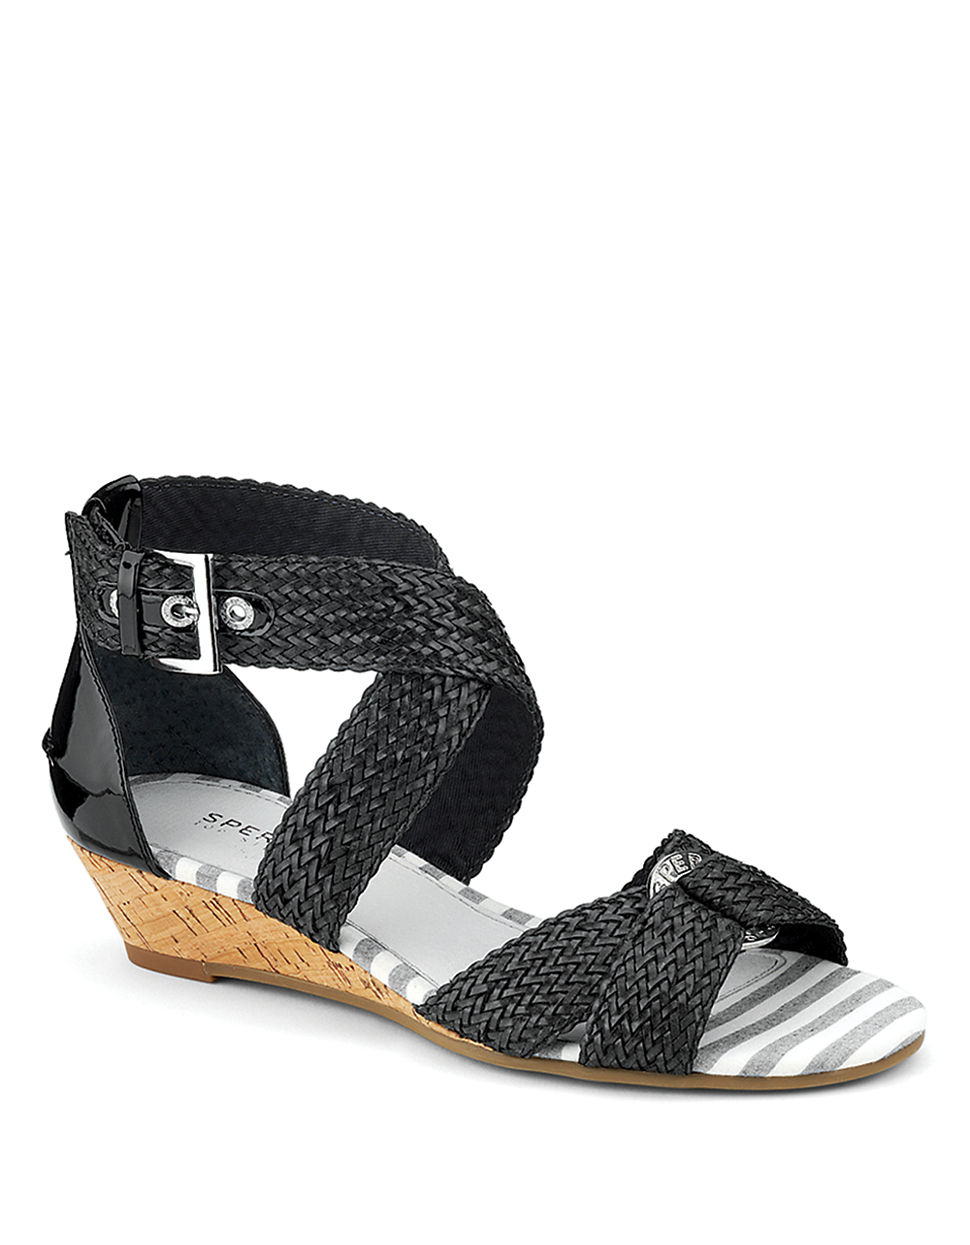 sperry top sider alvina woven leather wedge sandals in